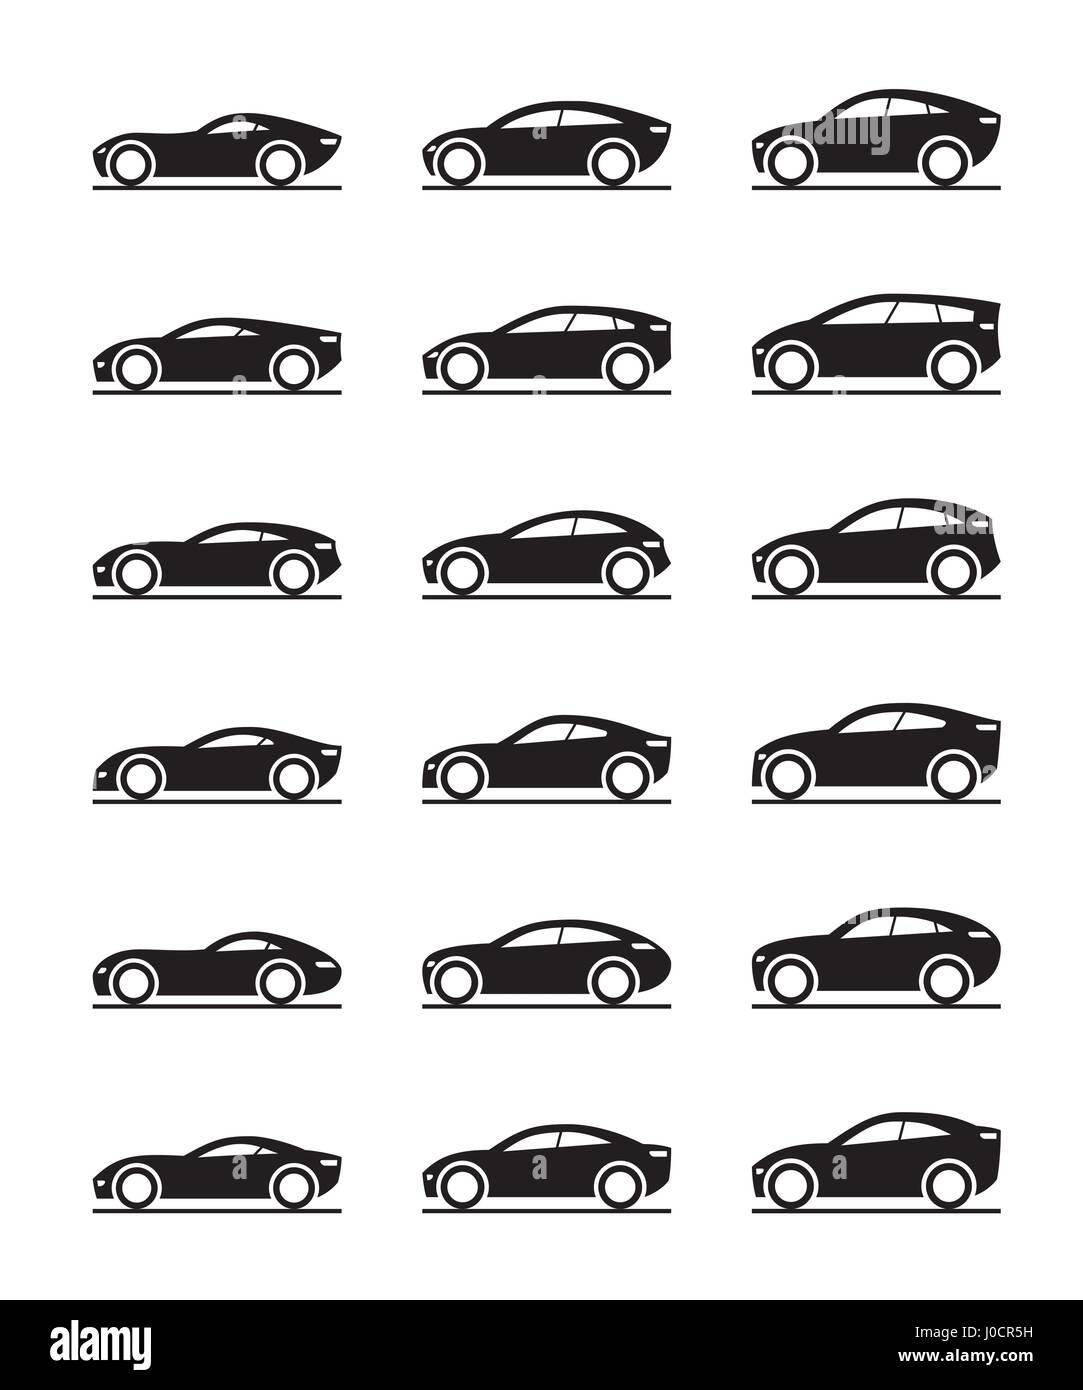 Contemporary concept cars - vector illustration - Stock Image